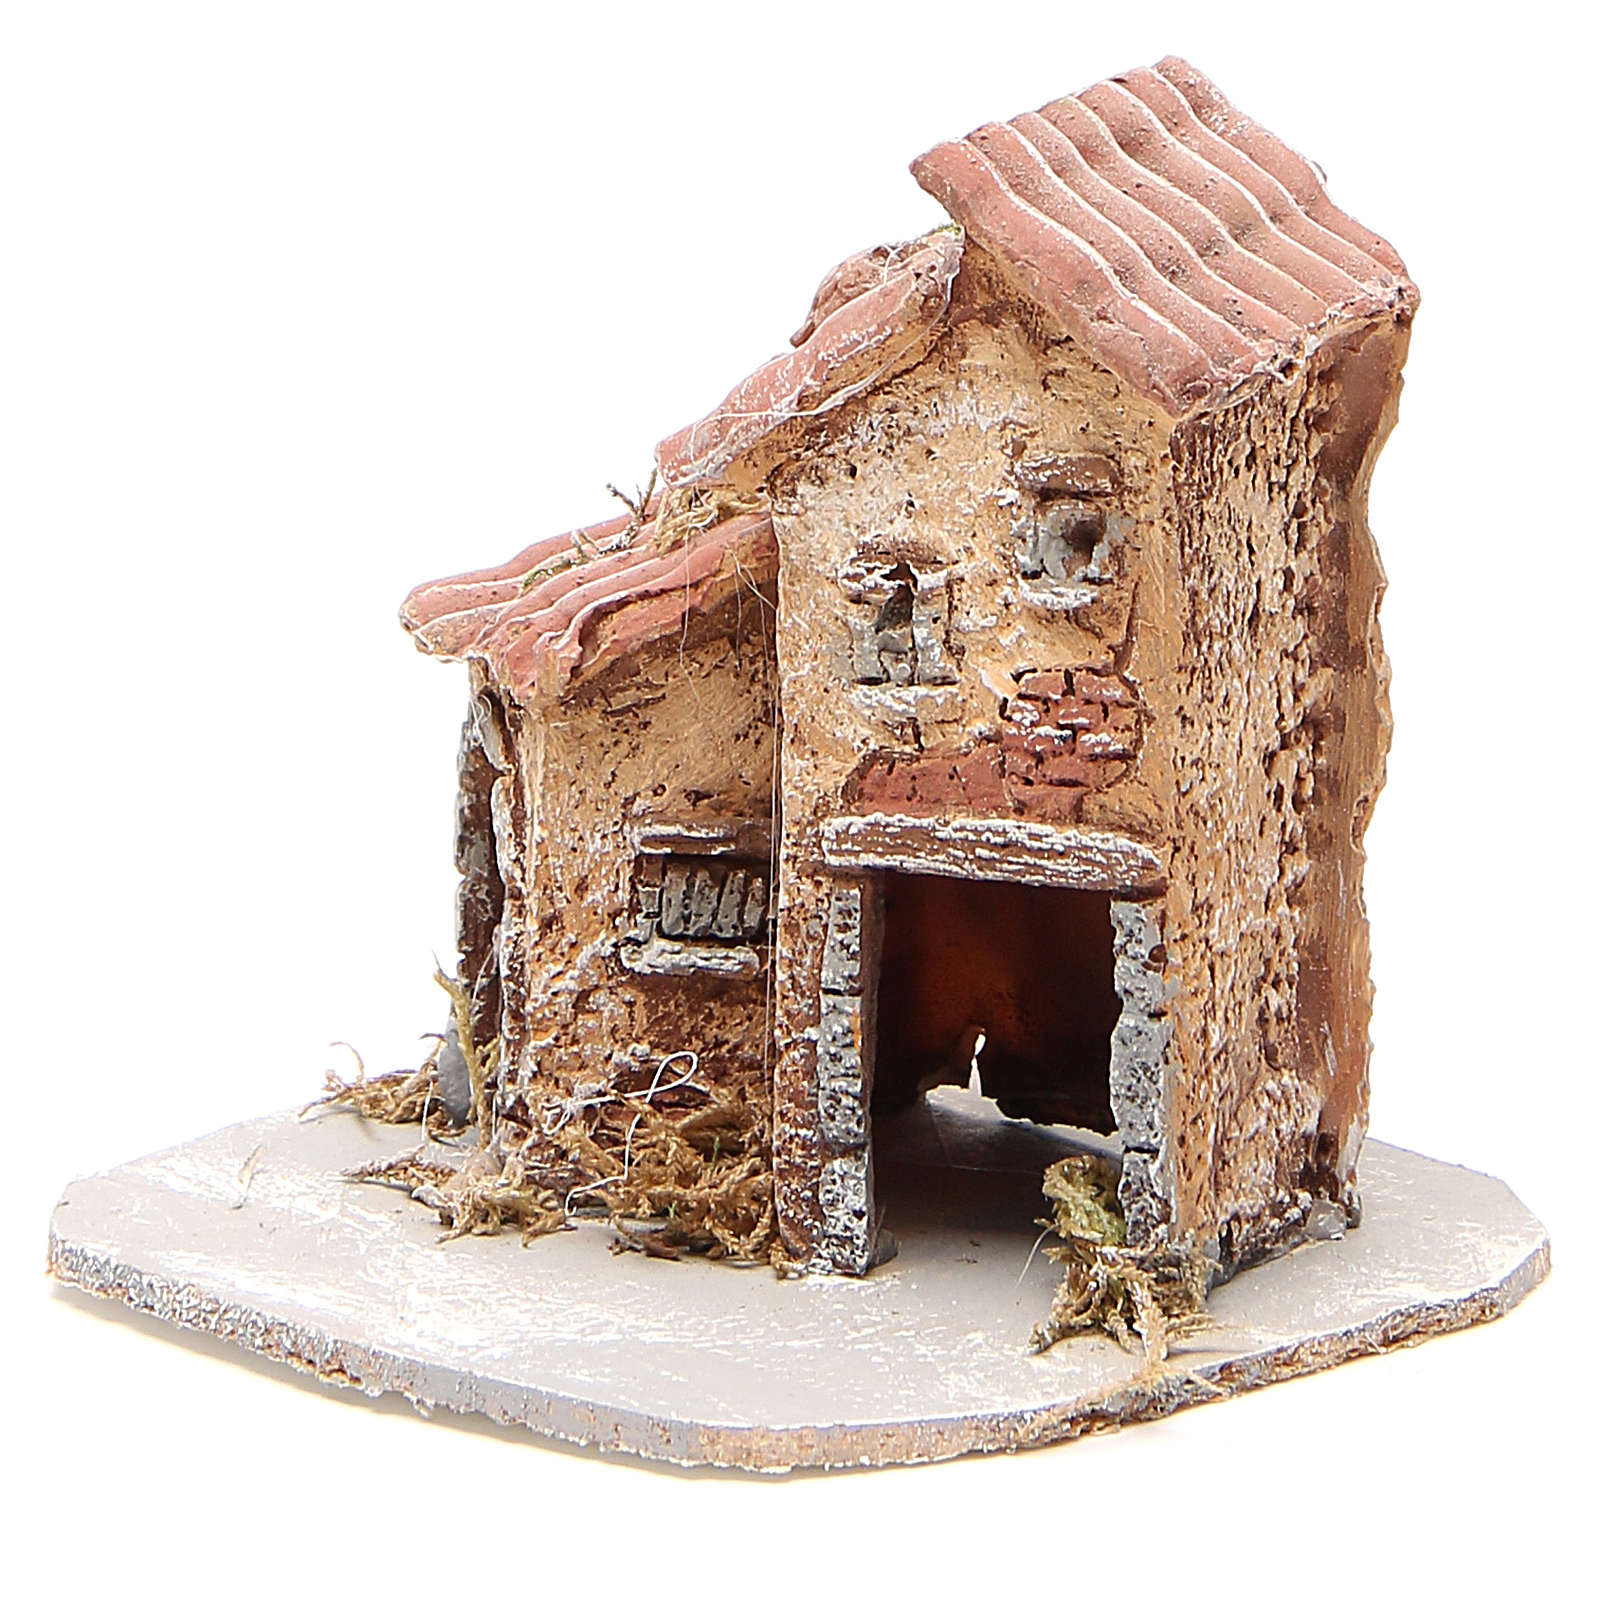 House in wood and resin for nativity scene, 14x14x14cm 4